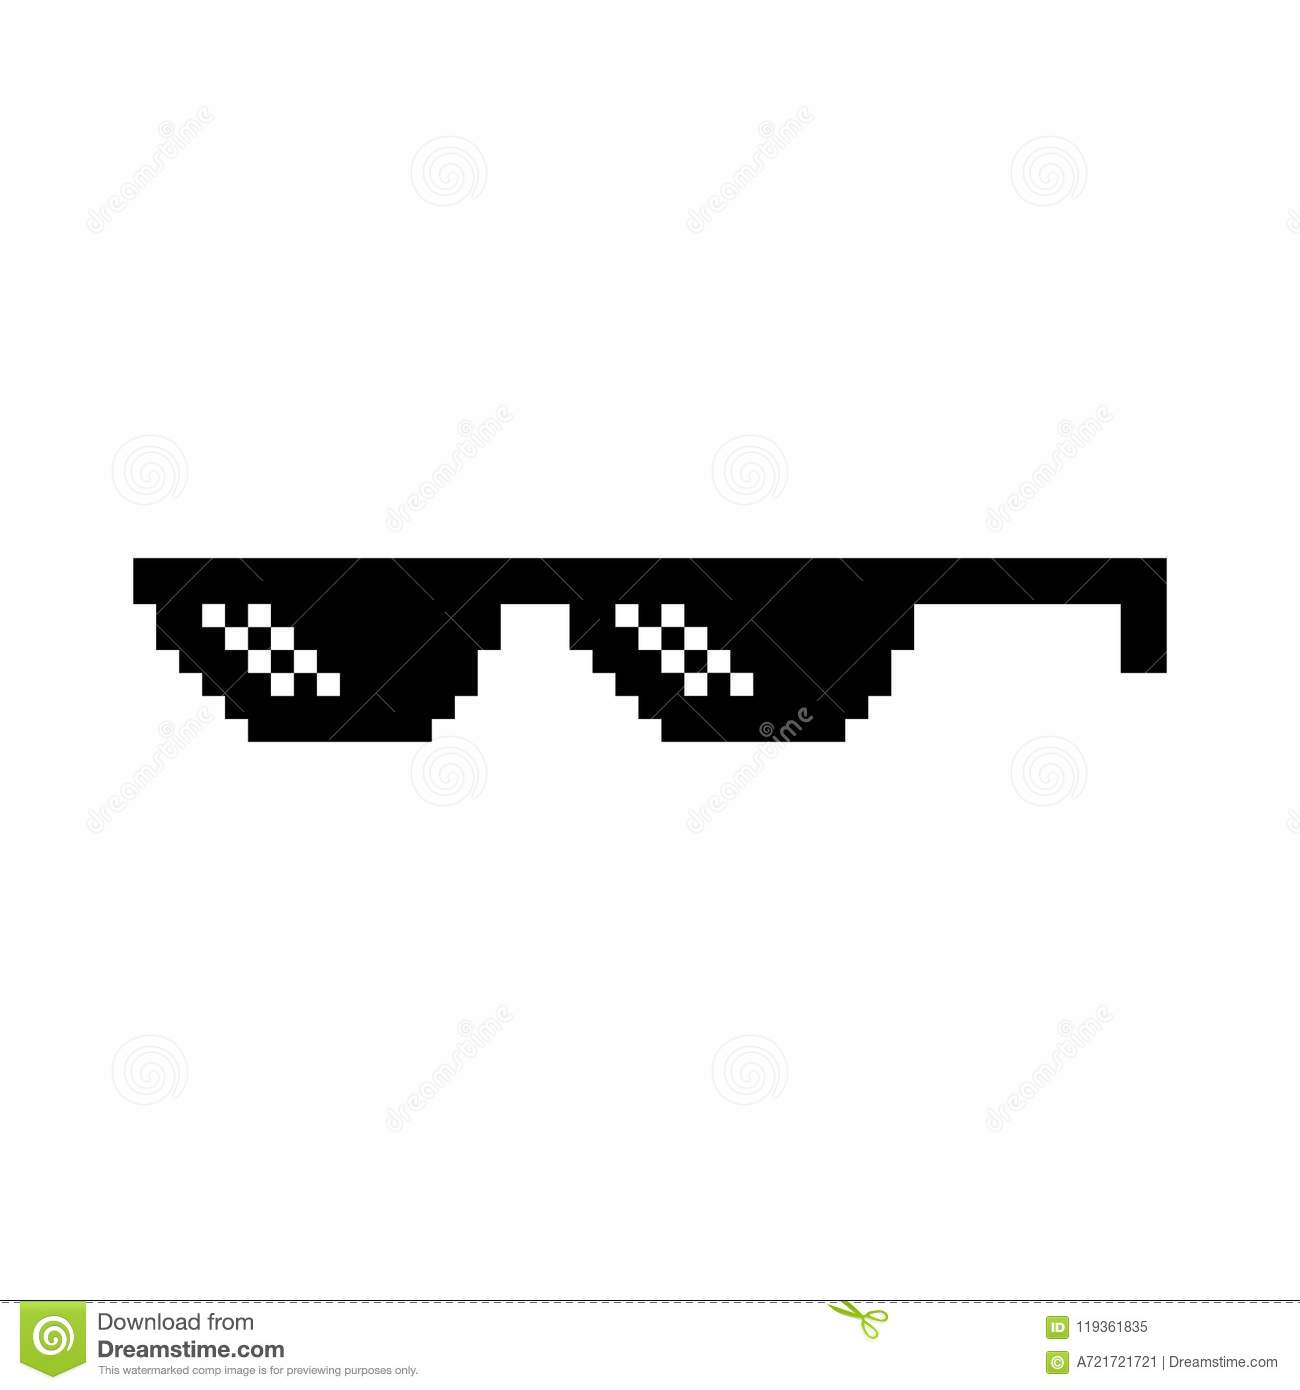 ecd21f62 Creative illustration of pixel glasses of thug life meme isolated on  transparent background. Ghetto lifestyle culture art design. Mock up  template.